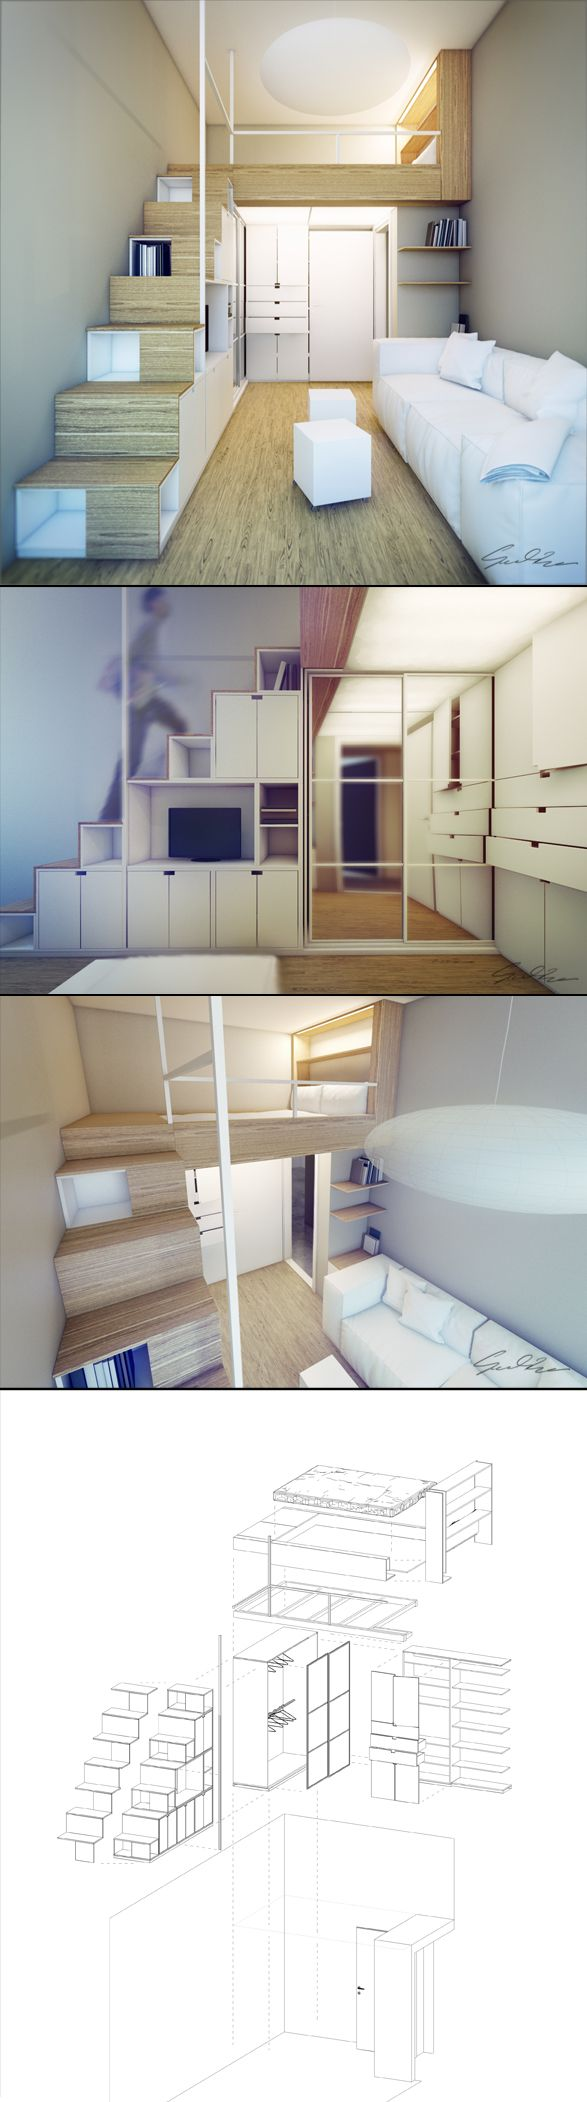 Loft bed with stairs diy  Loftbed design  Stairs  Pinterest  Tiny houses Lofts and House